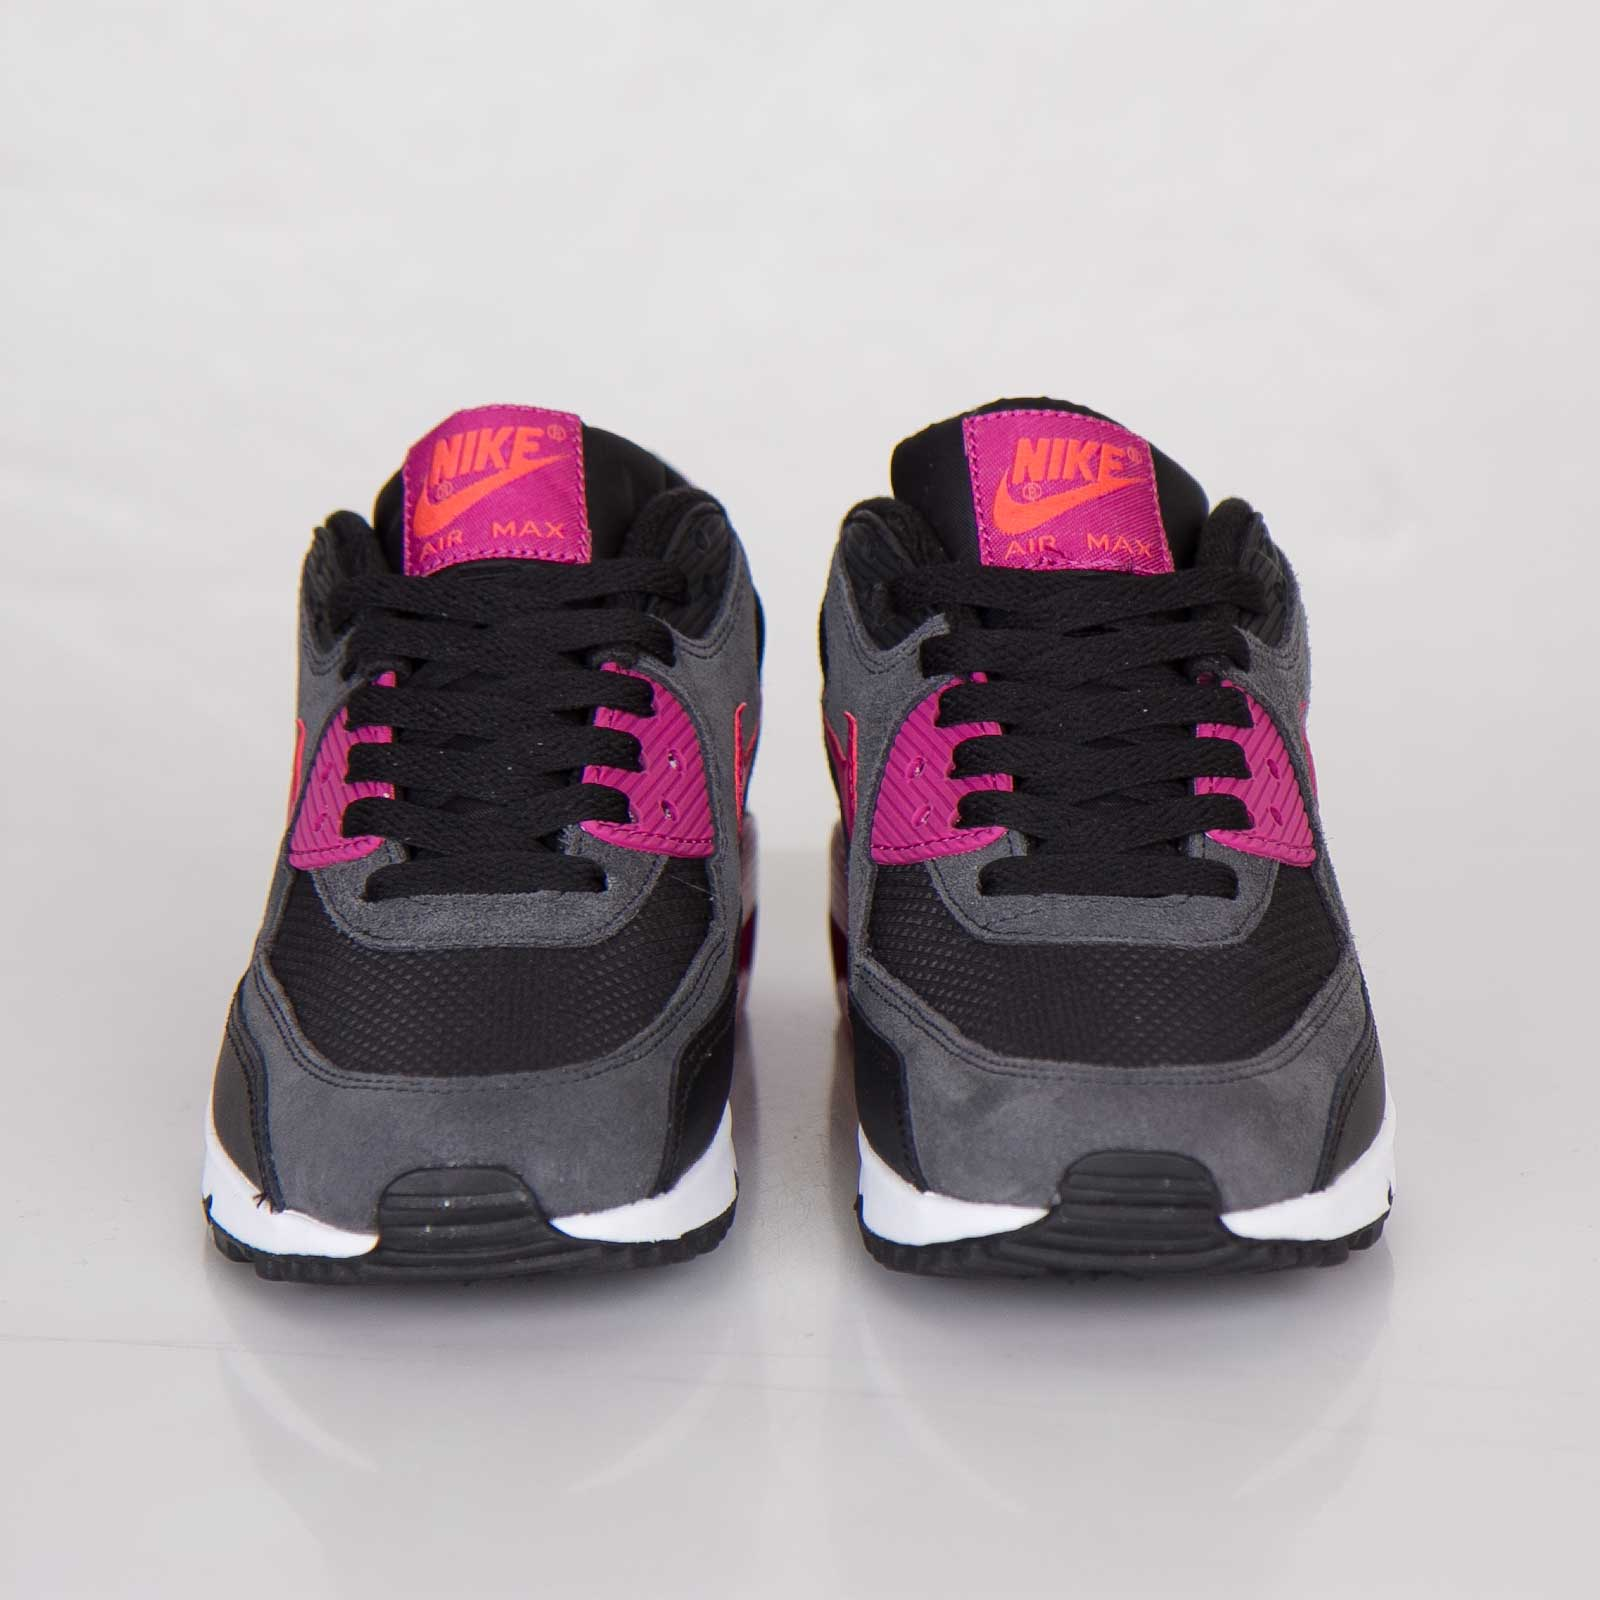 the latest 5b5d6 67a9f Nike Wmns Air Max 90 Essential - 616730-005 - Sneakersnstuff   sneakers    streetwear online since 1999